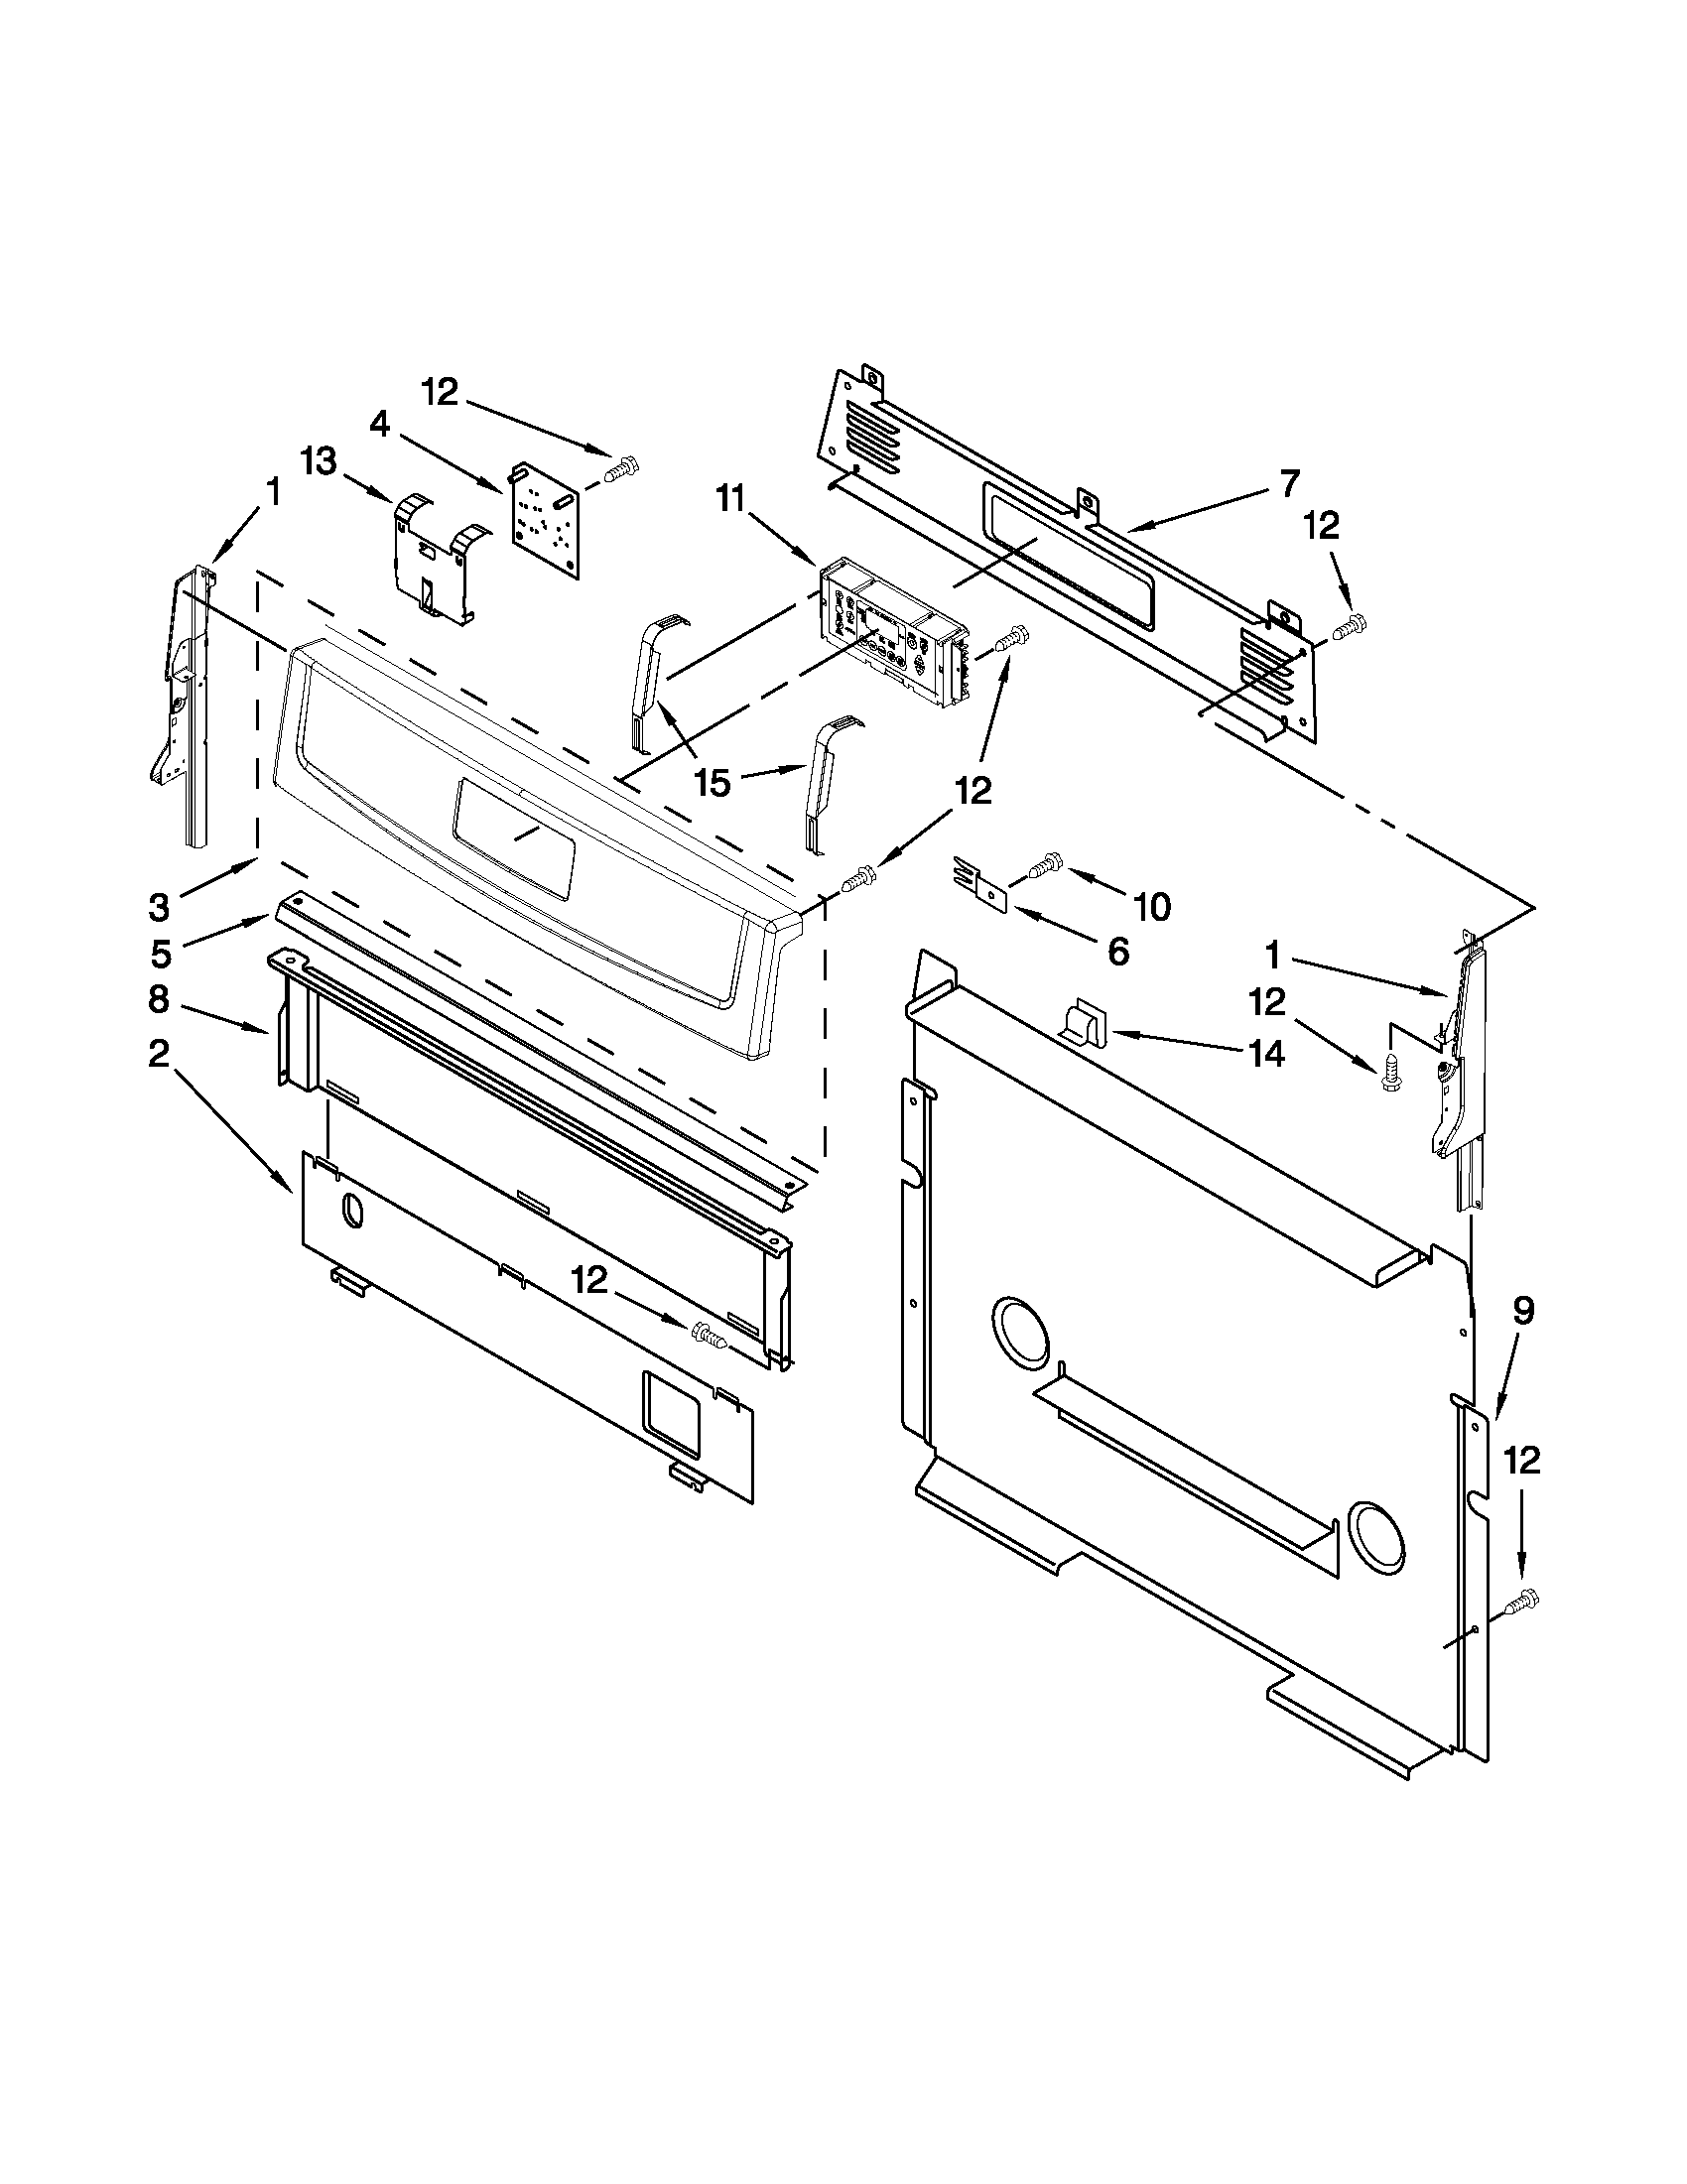 small resolution of amana agr5844vdw5 control panel parts diagram